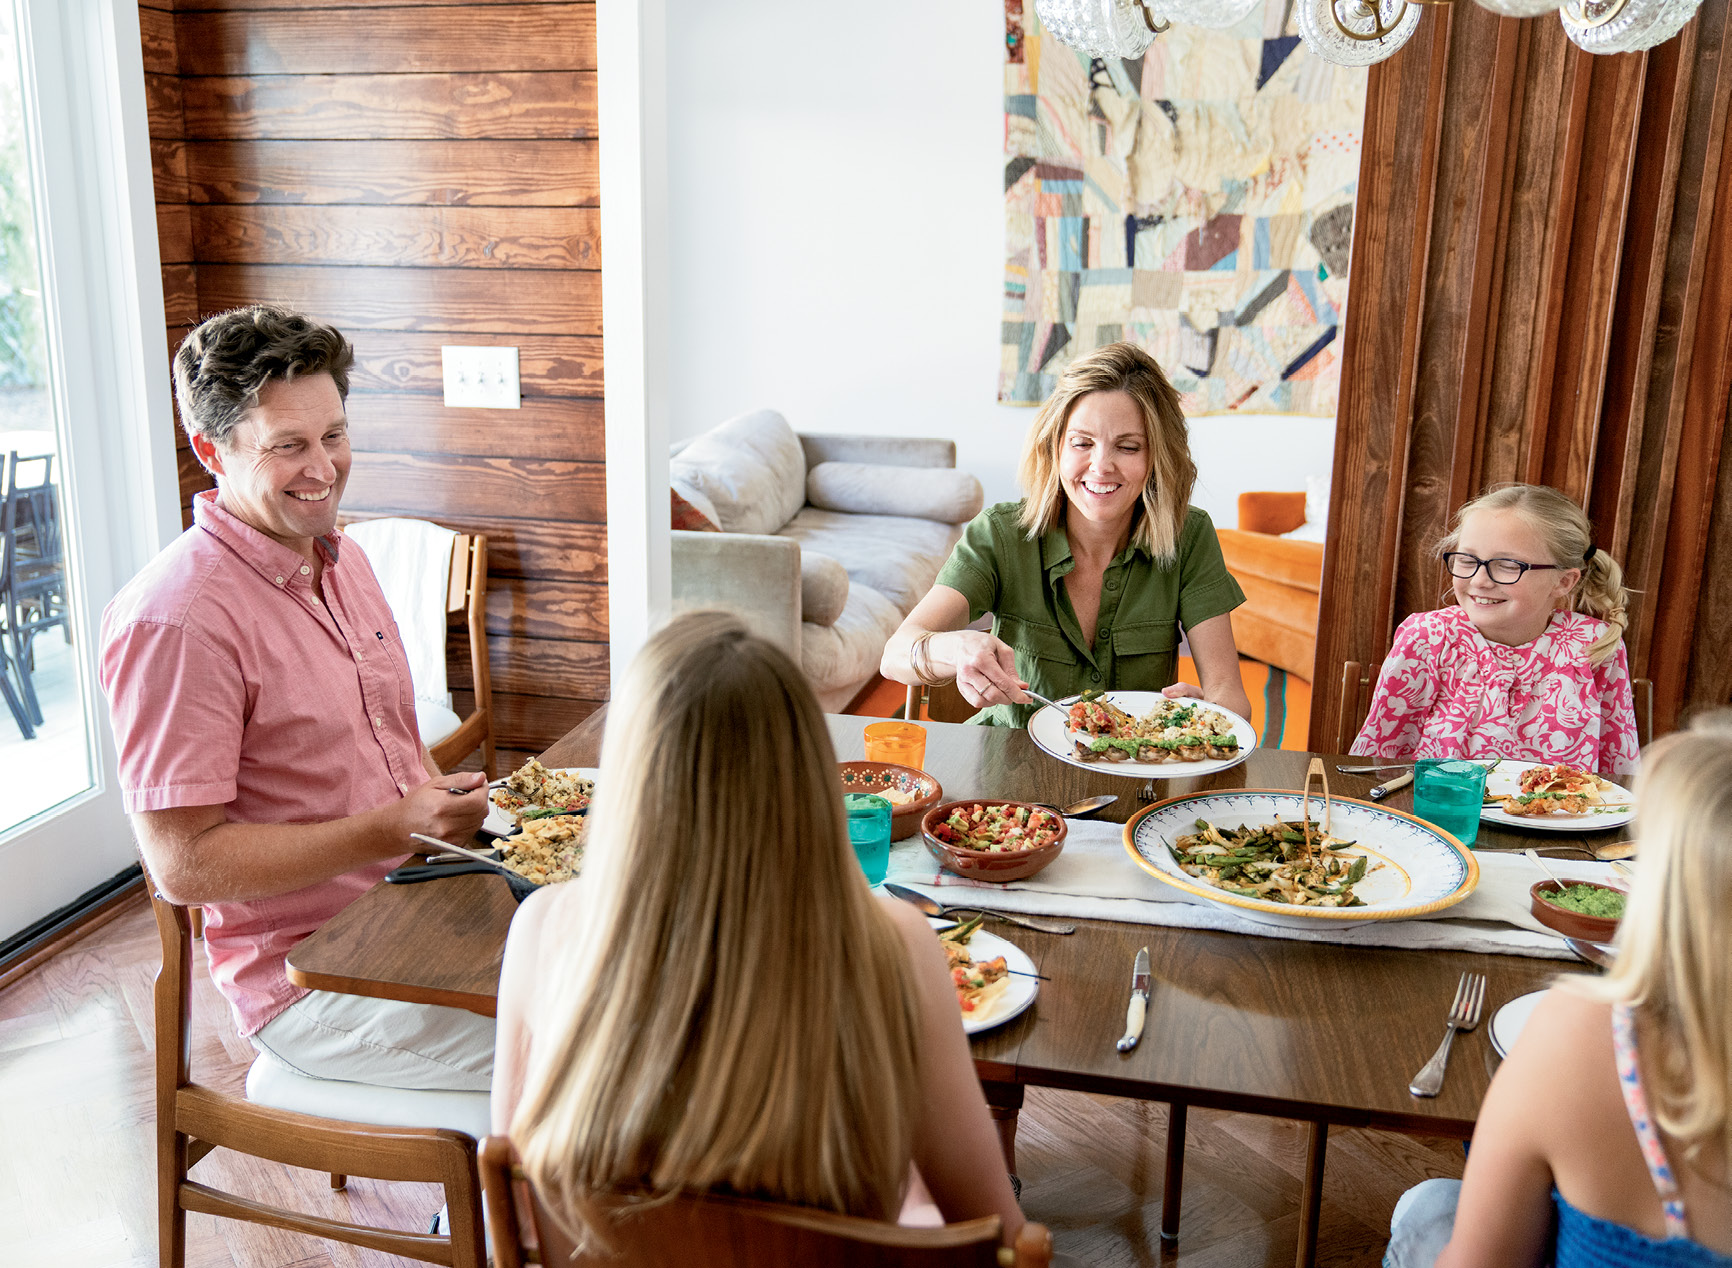 On Sundays, the Moreys make a point of gathering around the table for supper and conversation. This tradition helps the busy family unwind and reconnect before the start of the week.